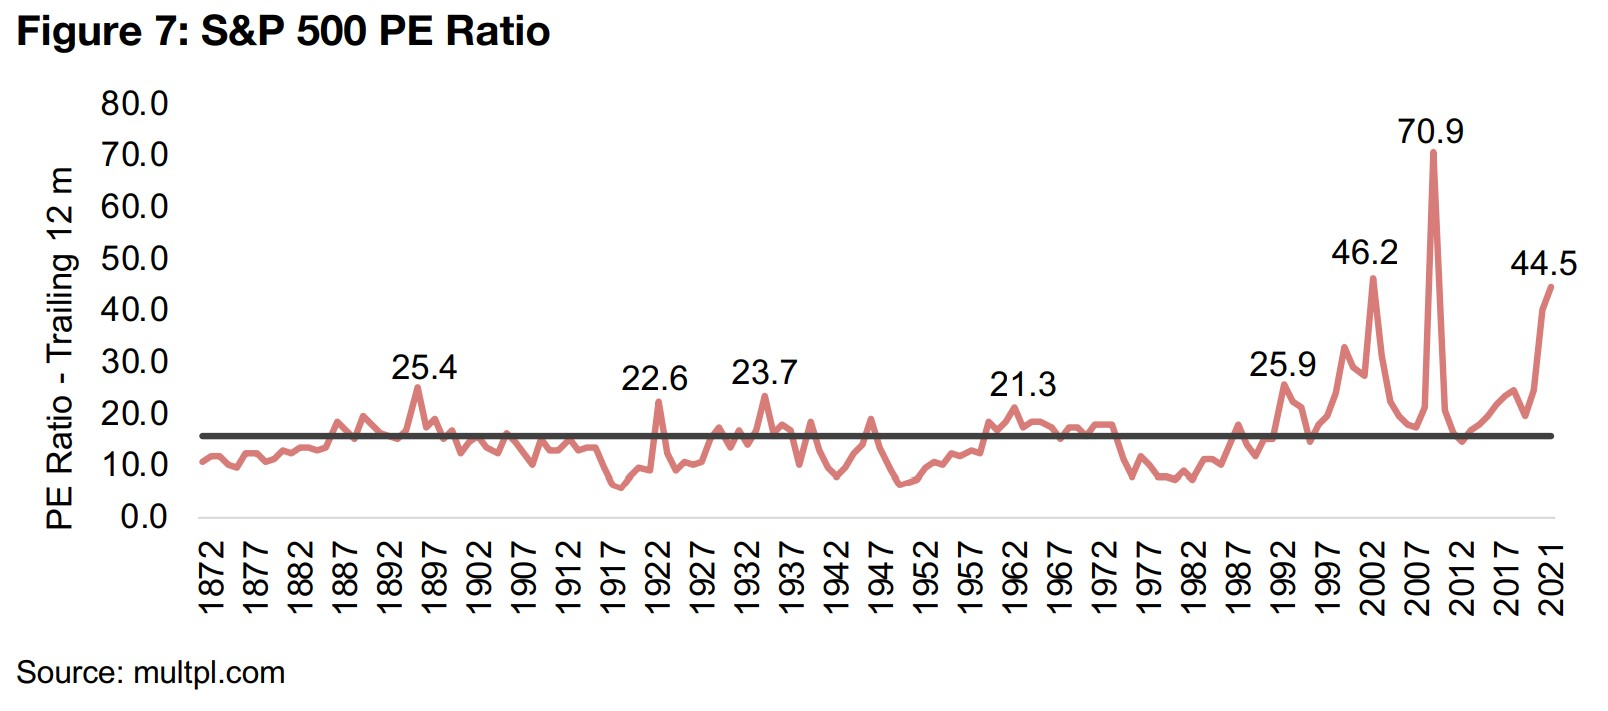 Equity market valuations are at very high levels historically